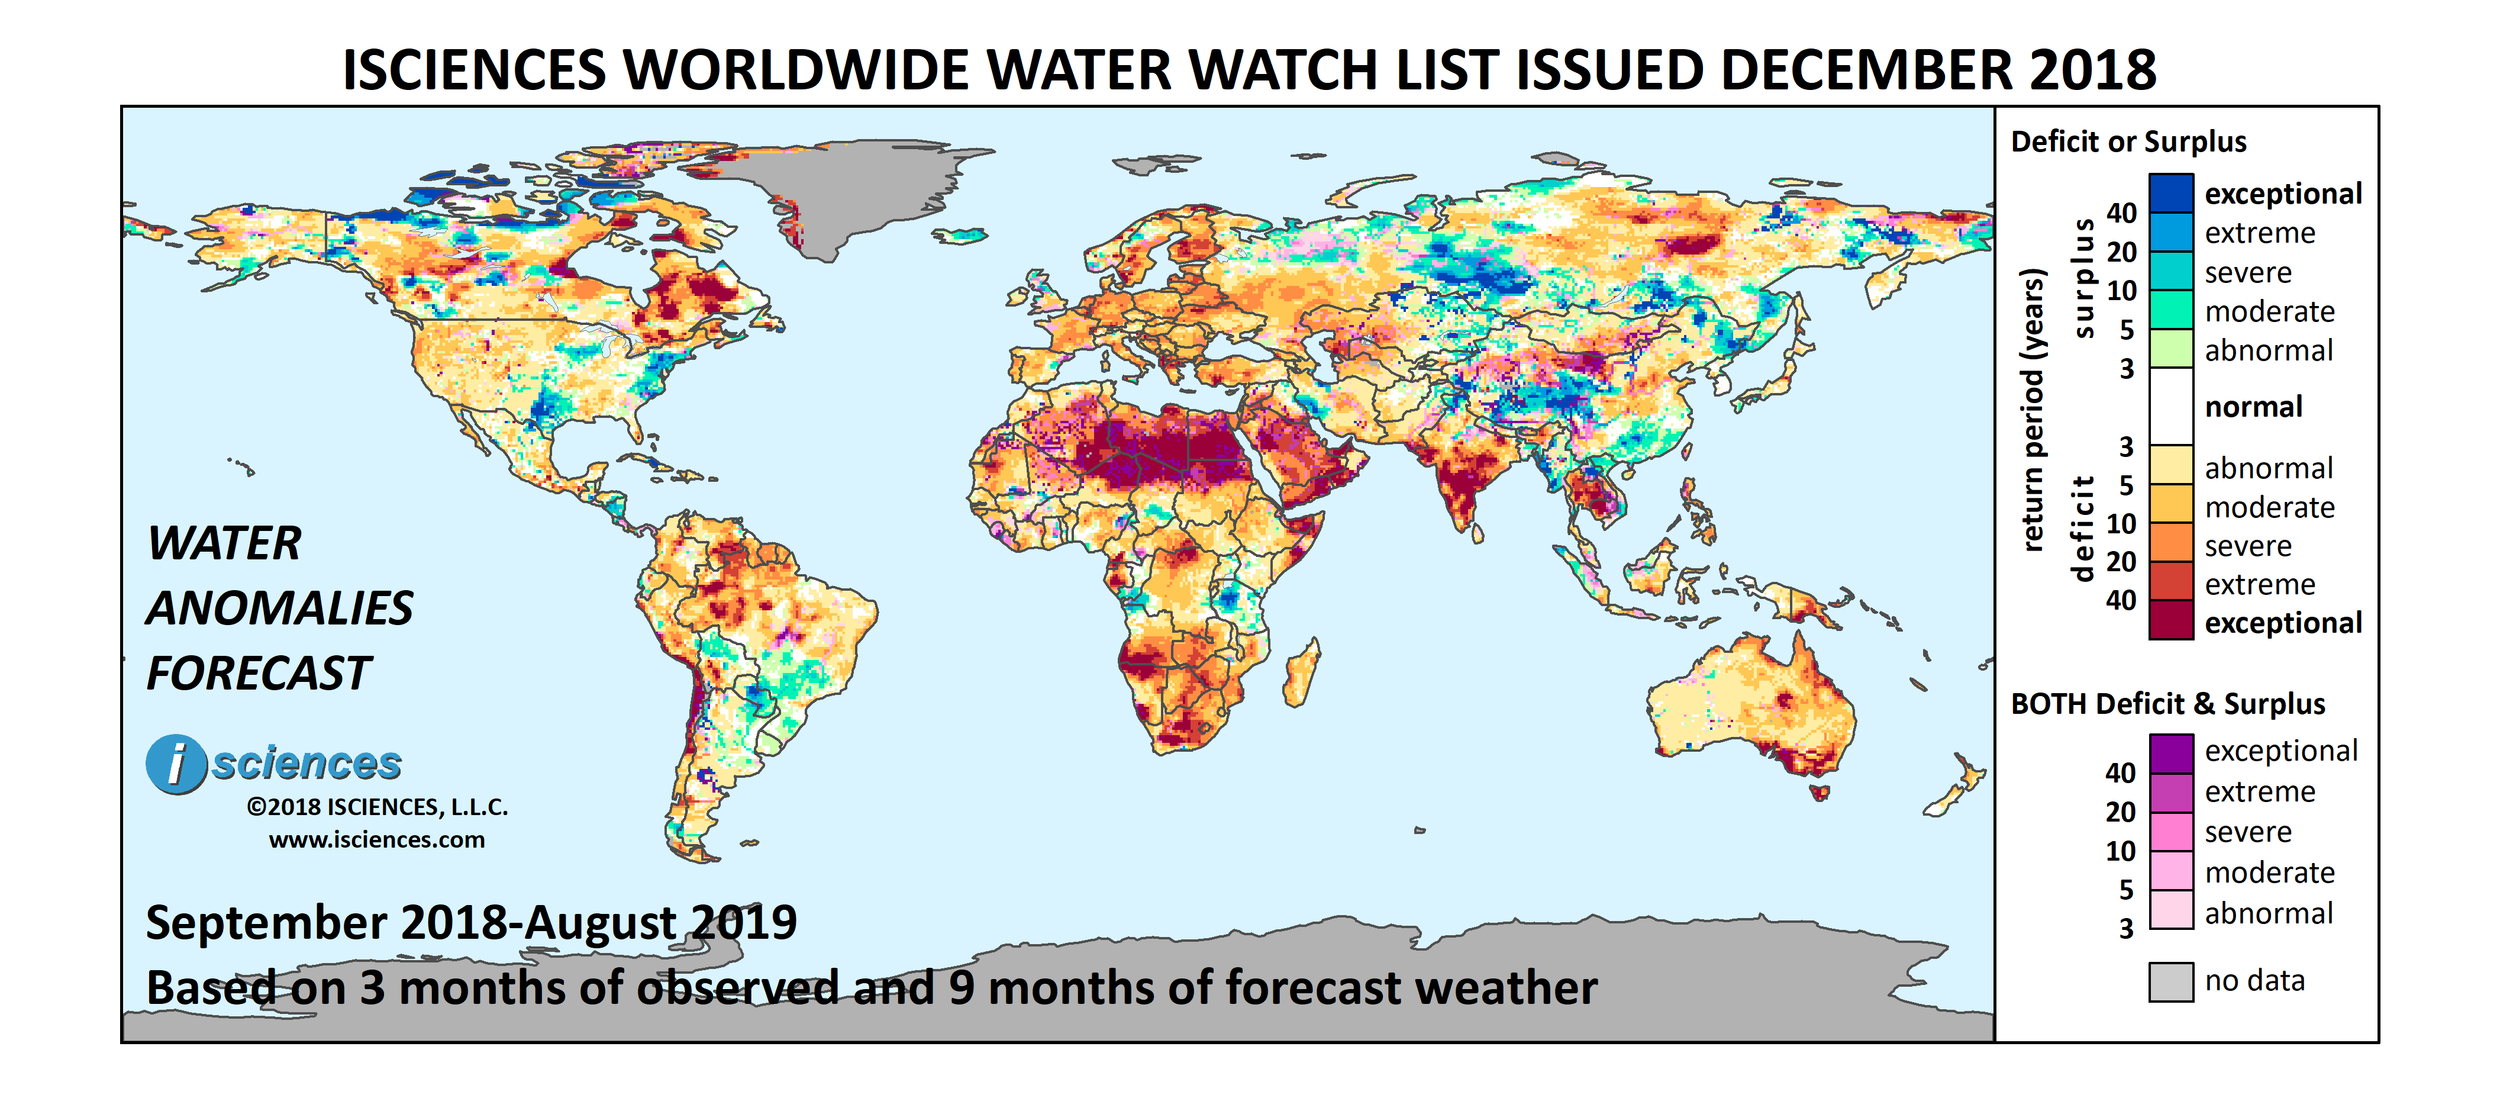 ISciences_Worldwide_Water_Watch_List_2018_December.png